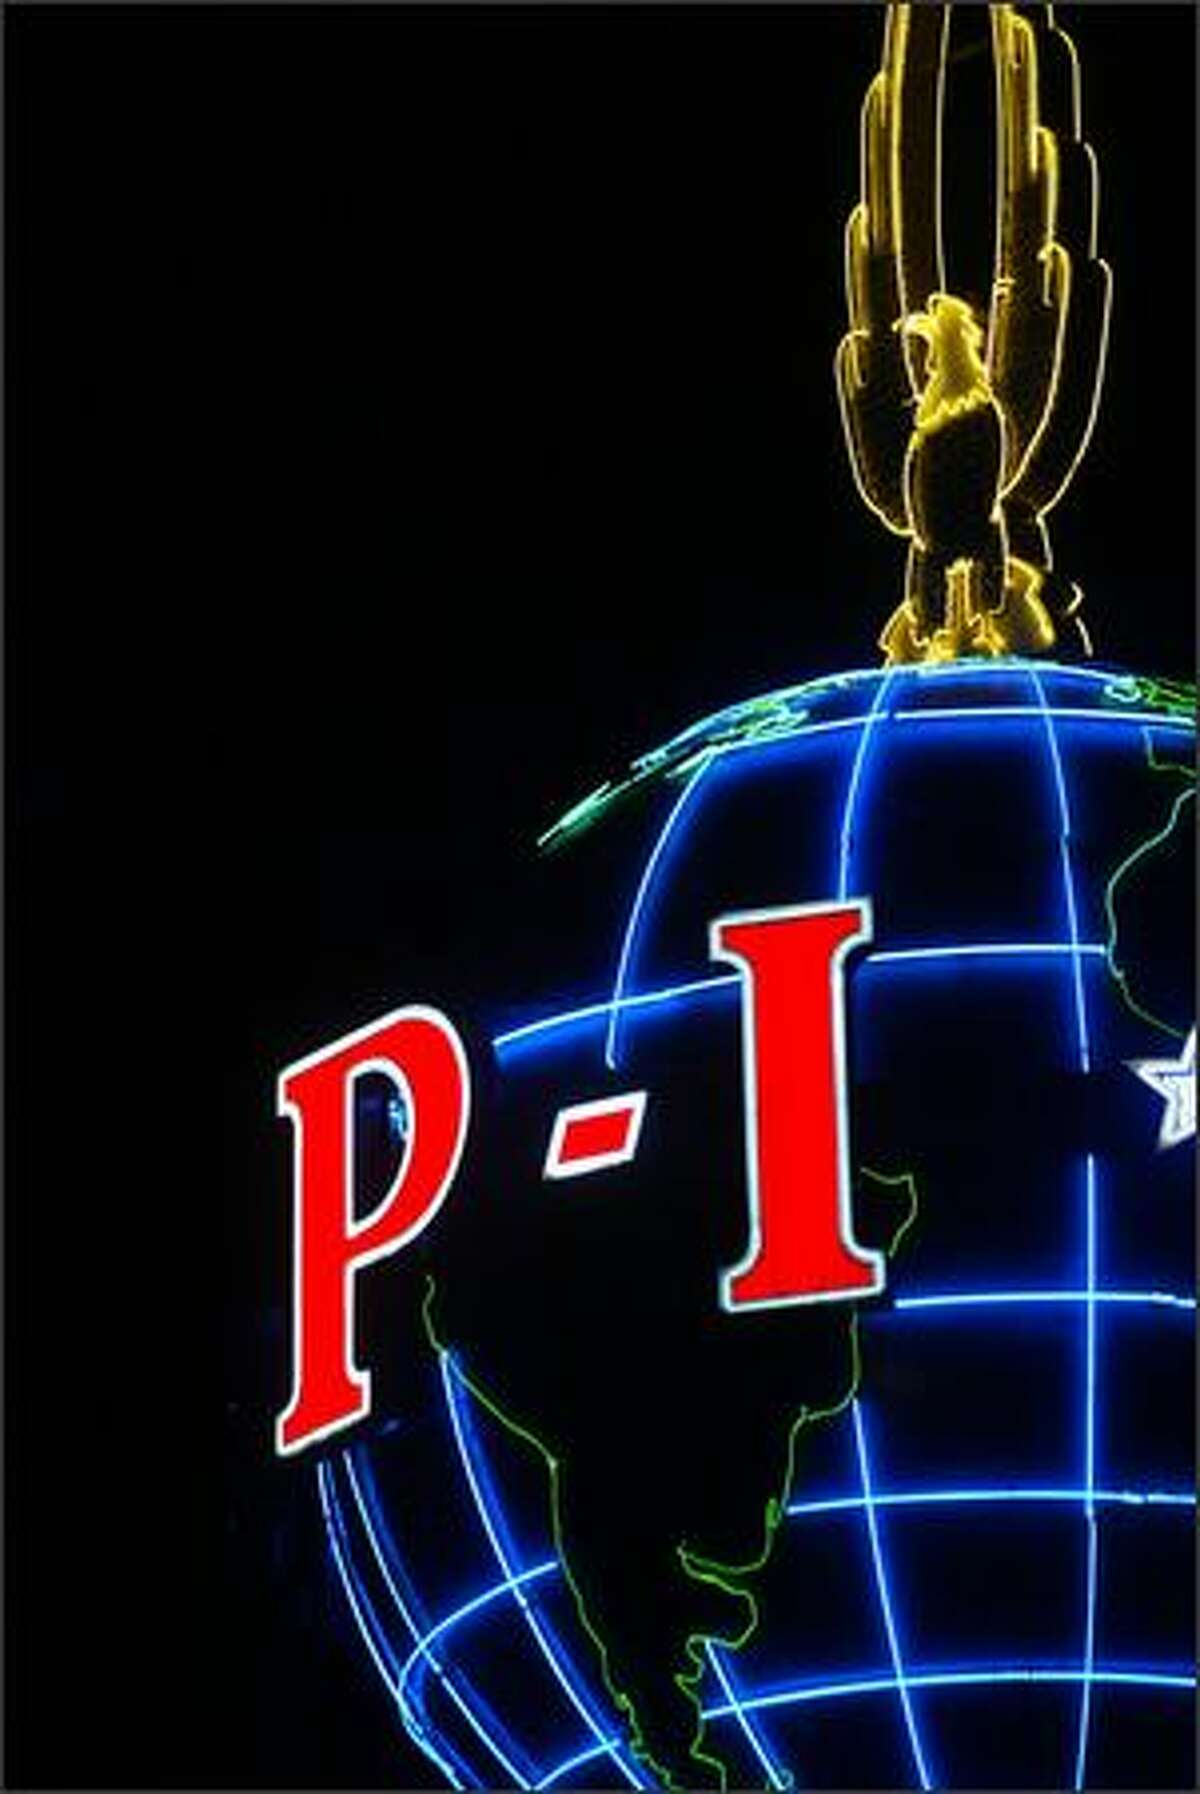 The Seattle P-I's neon globe has been a local landmark for over 60 years.